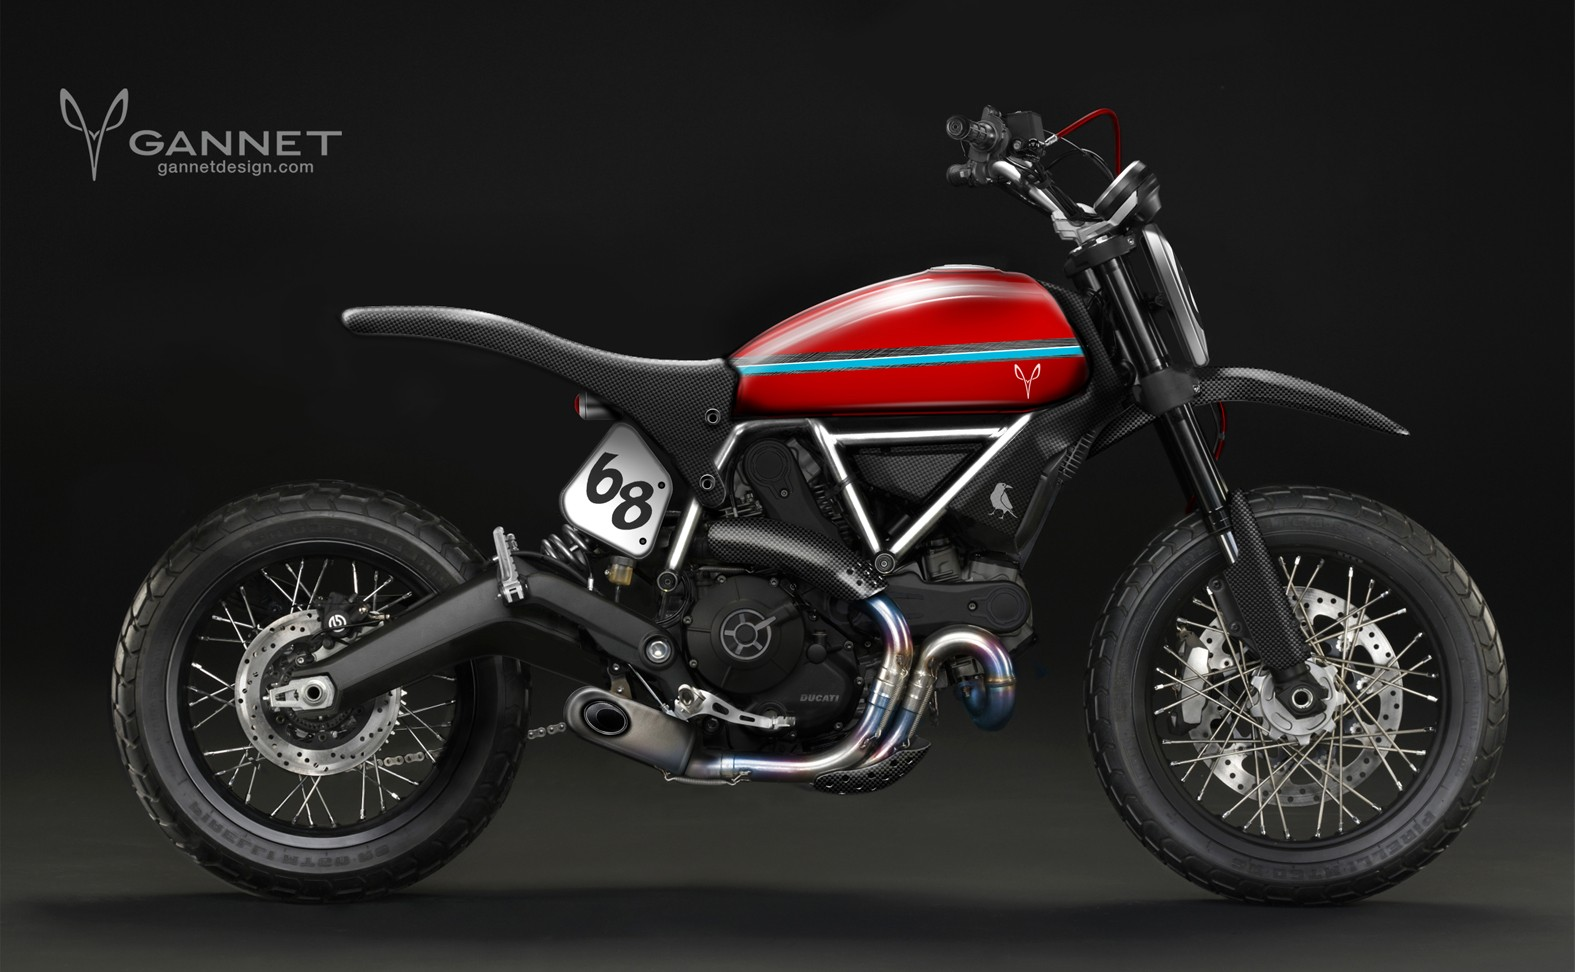 new ducati scrambler concepts flow in from gannet design autoevolution. Black Bedroom Furniture Sets. Home Design Ideas